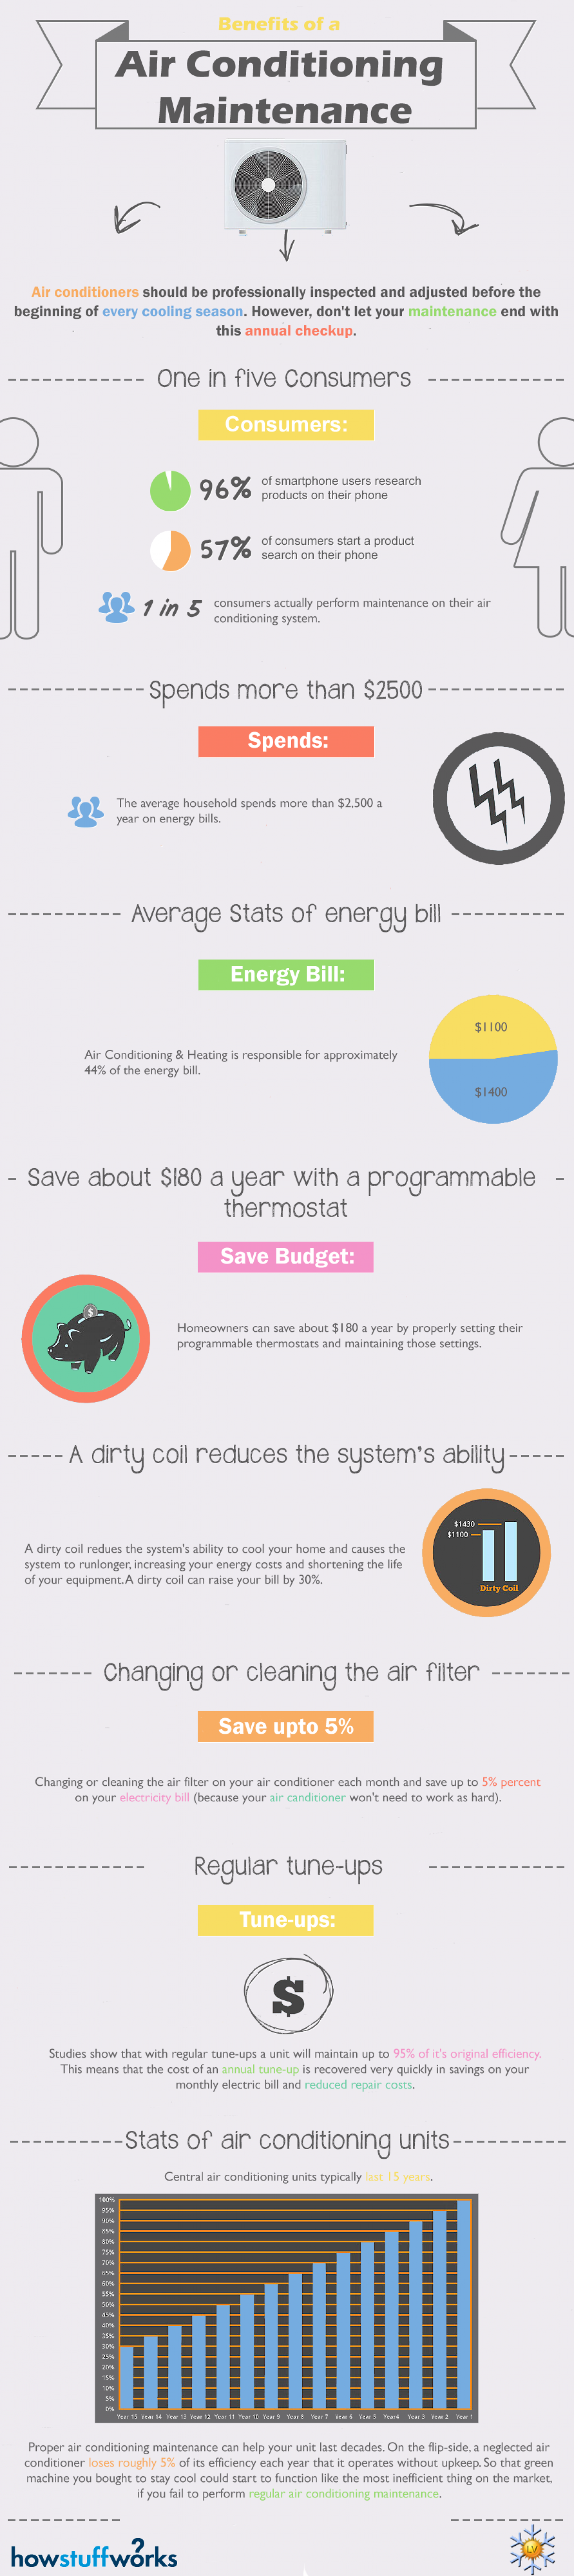 Benefits of a Air Conditioning Maintenance Infographic